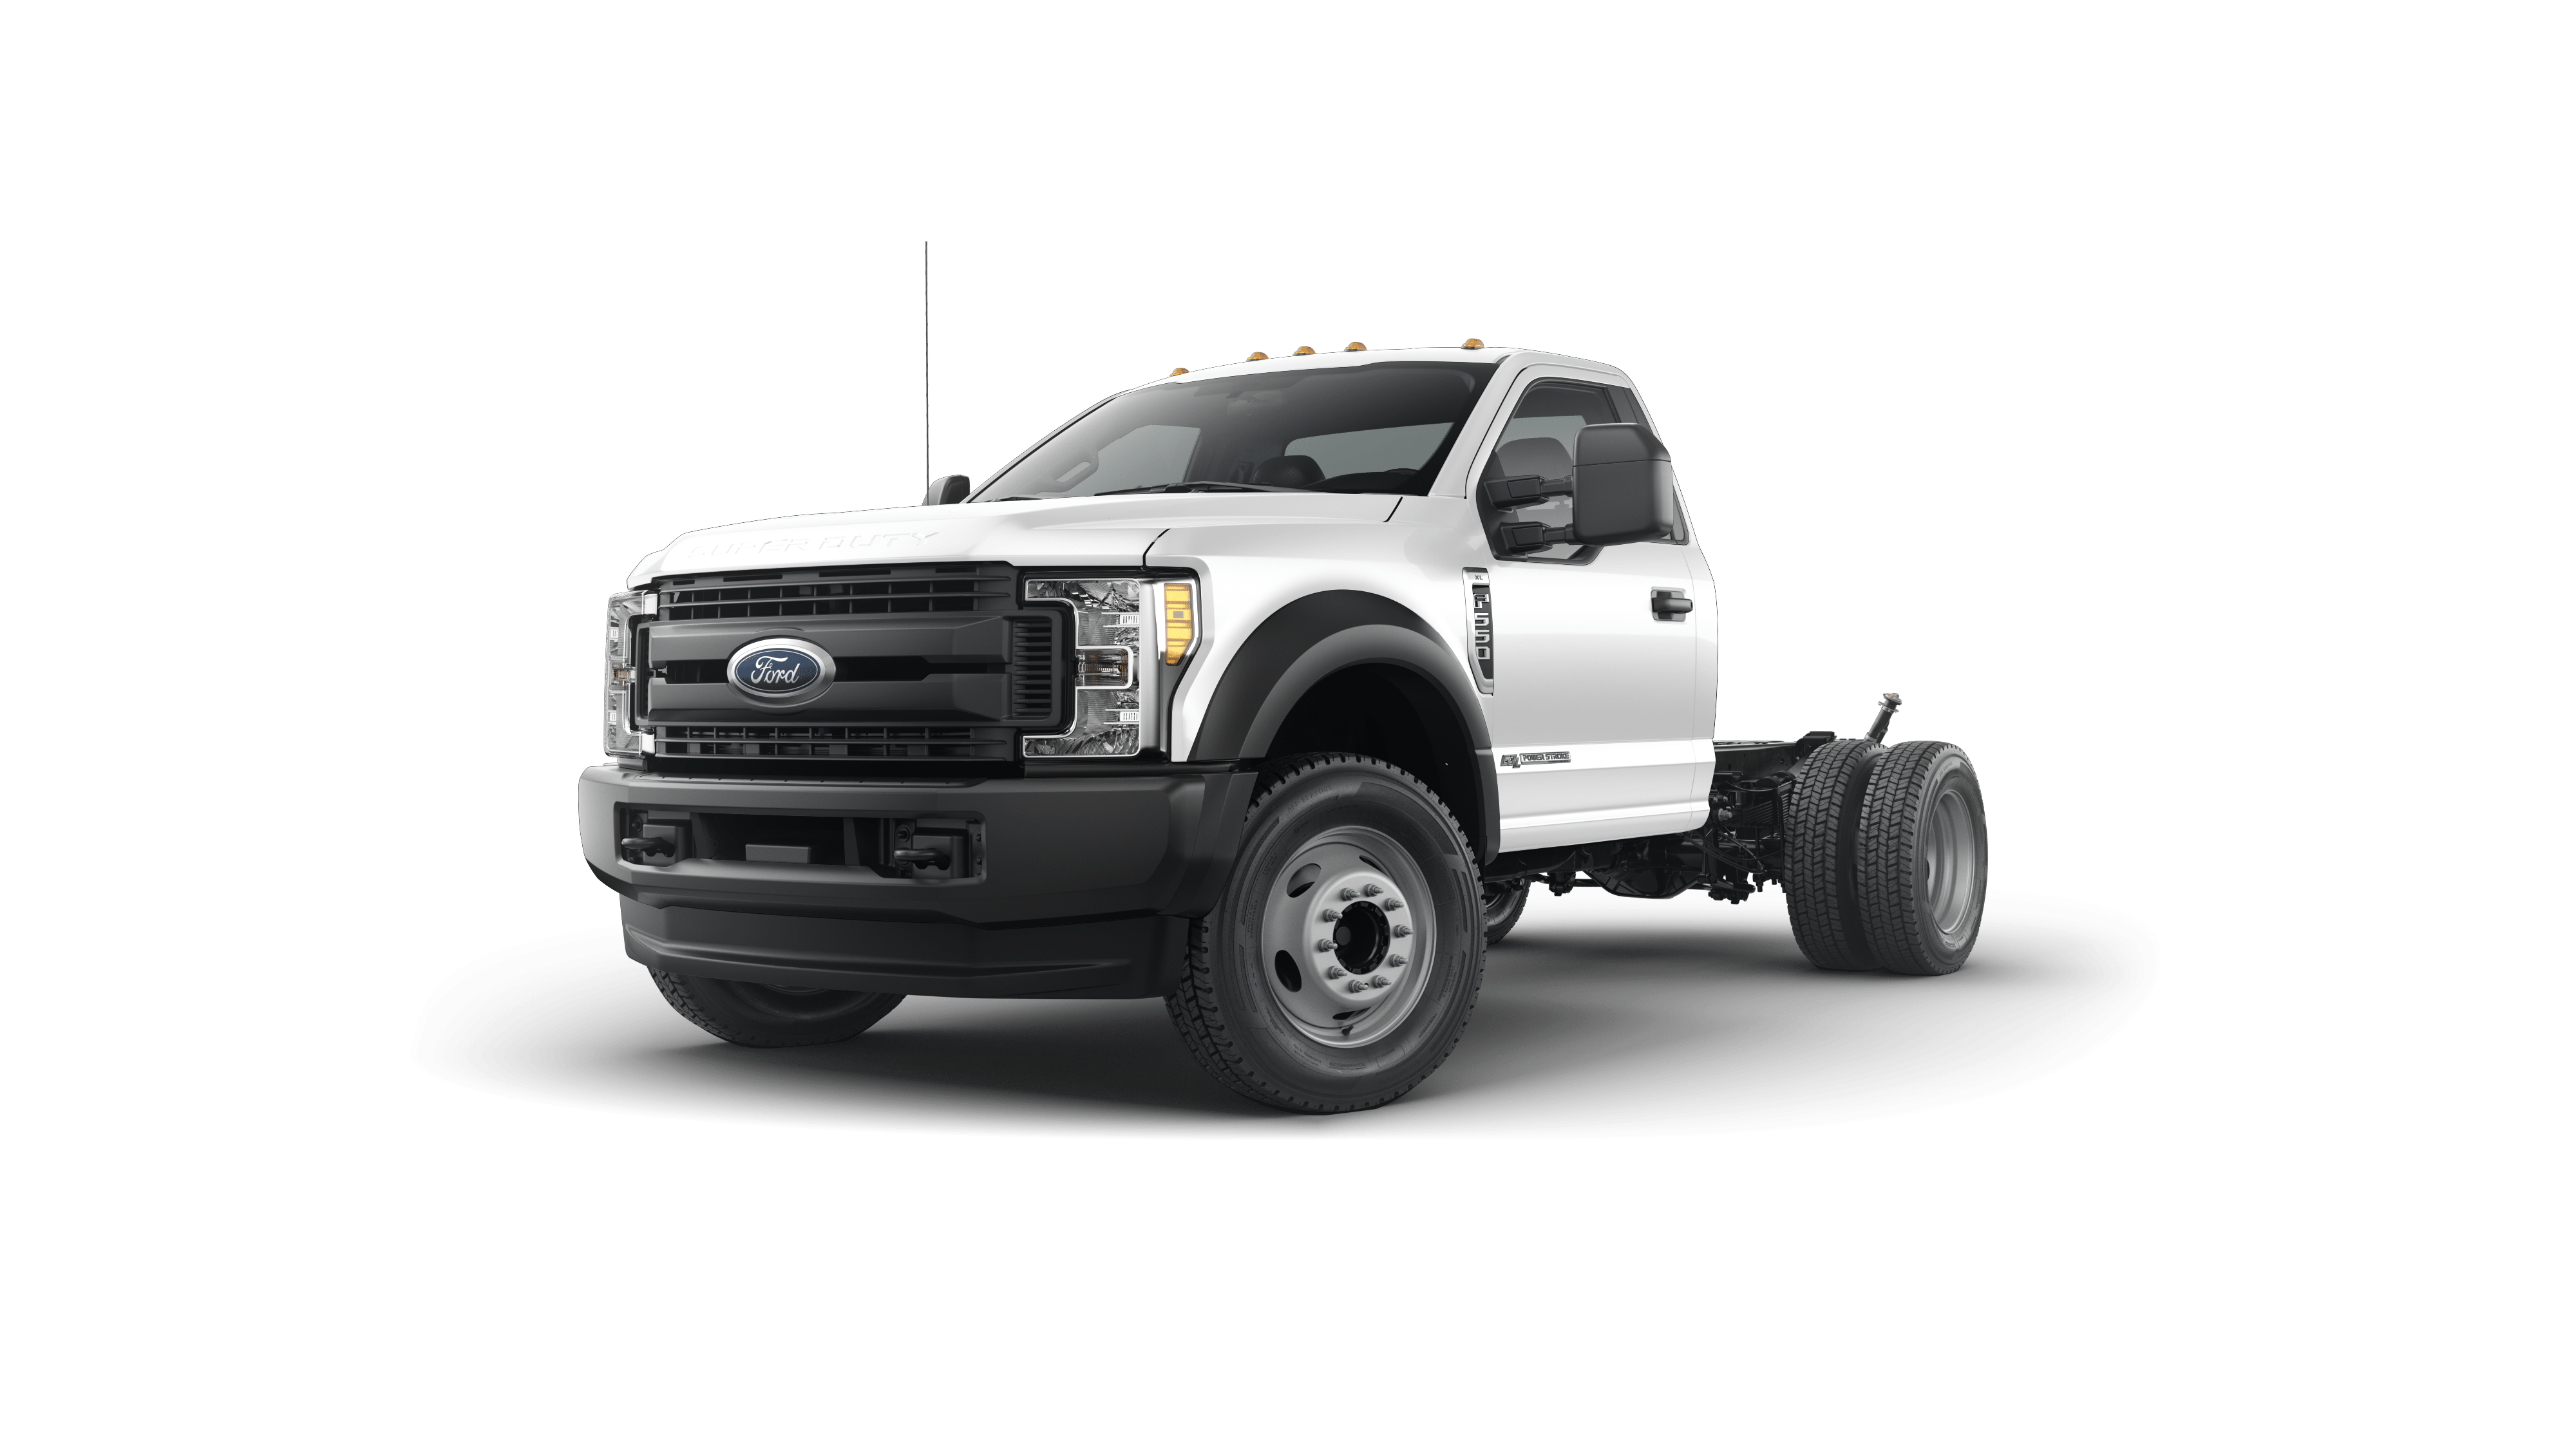 2018 Ford Super Duty F-550 DRW Vehicle Photo in Souderton, PA 18964-1038